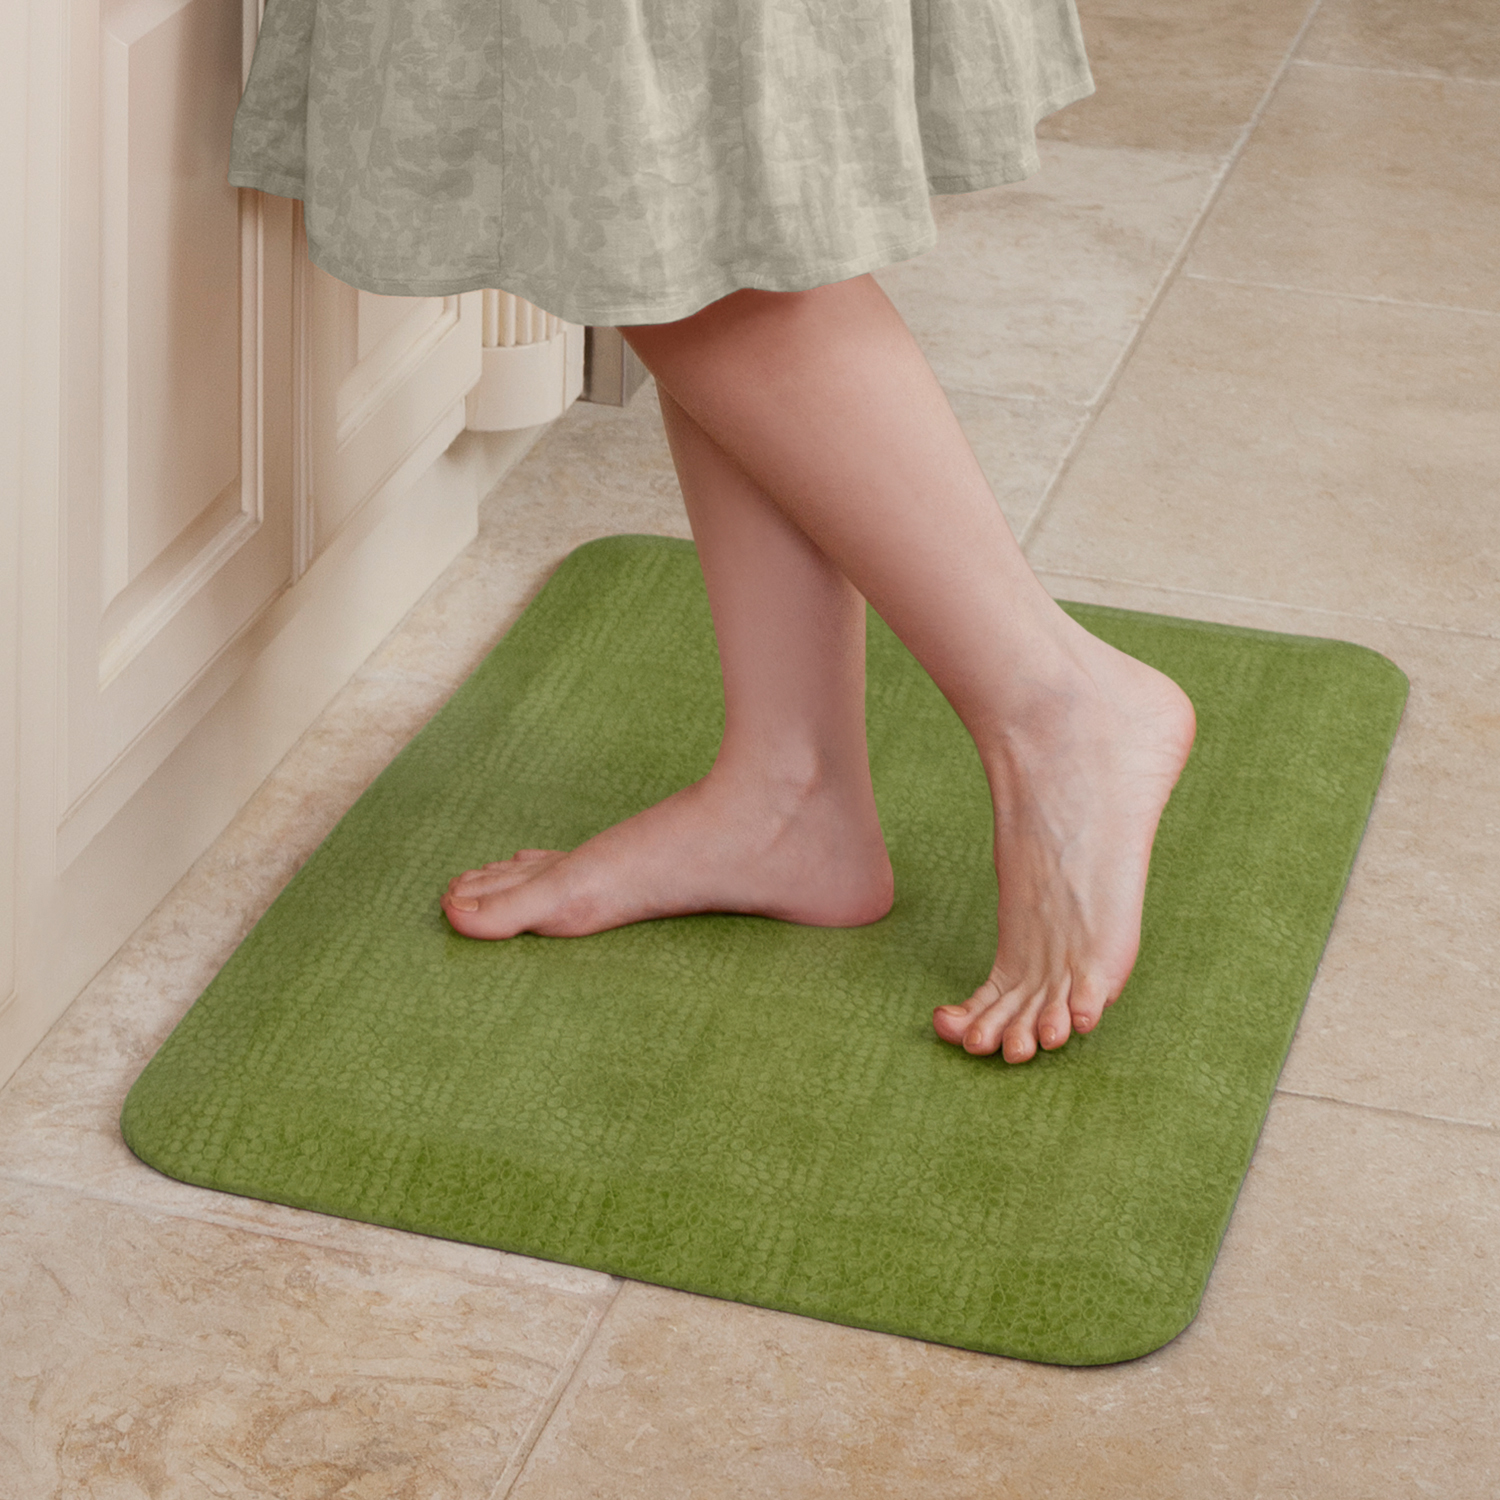 NewLife by GelPro Anti-Fatigue Comfort Mat 20x32 Pebble Palm